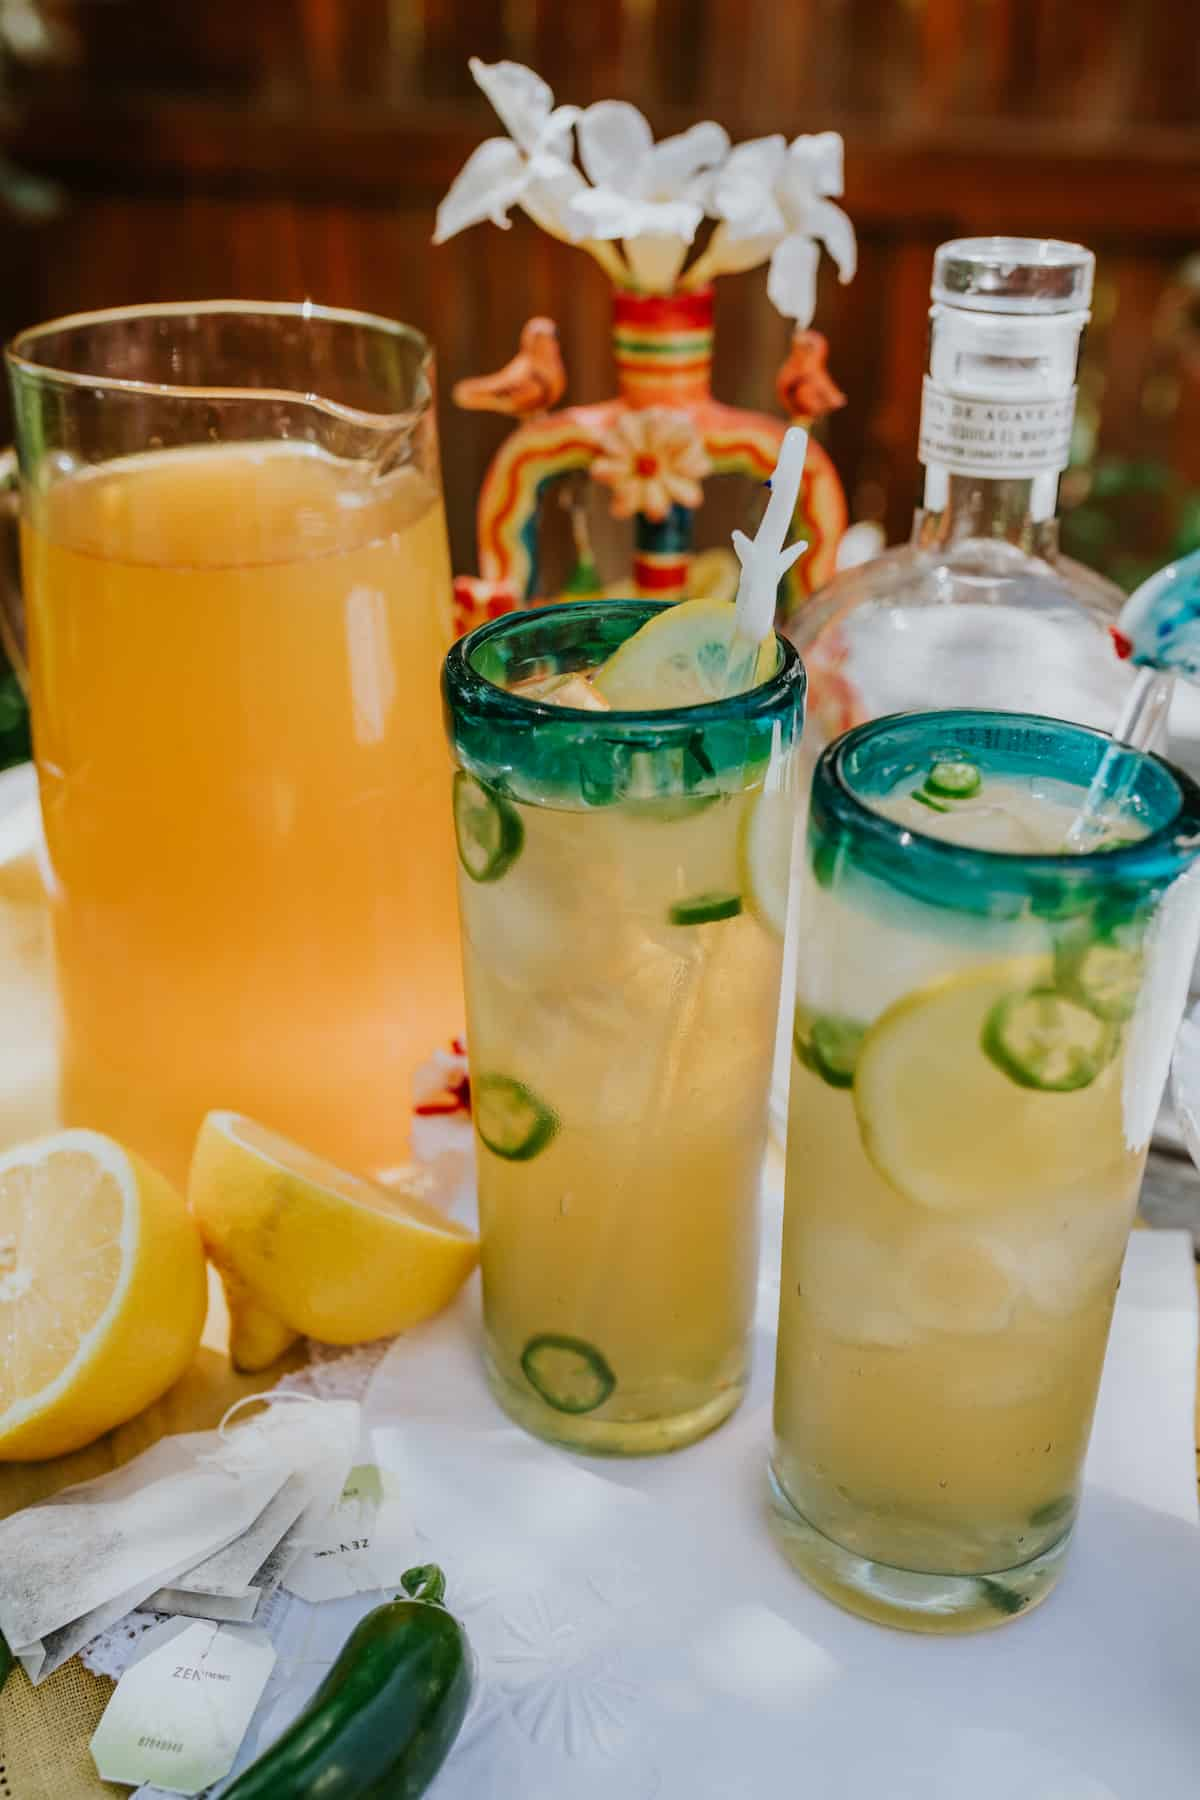 tall glass pitcher of green tea lemonade in the background with two spicy arnold palmer margaritas in green rimmed glasses in the foreground